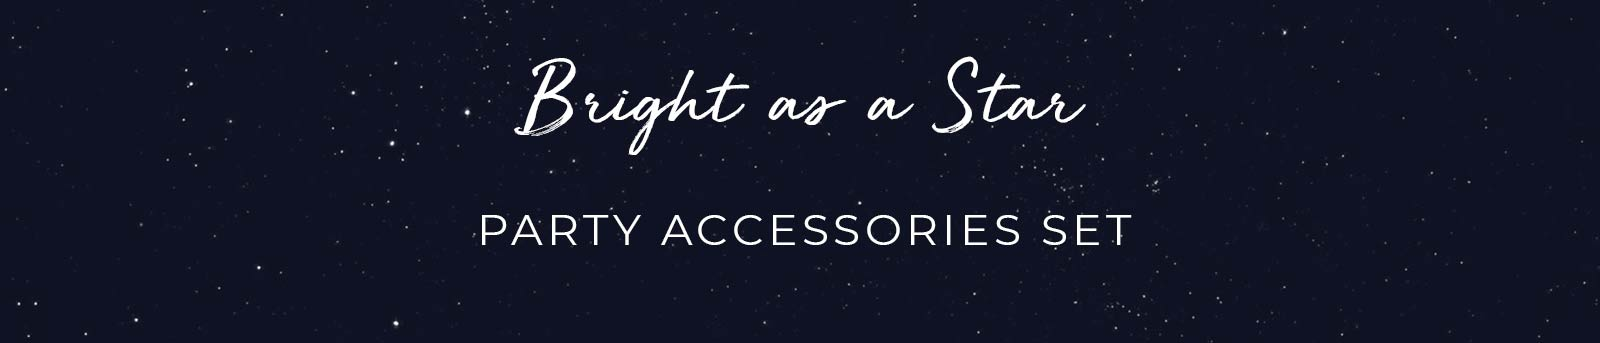 Bright as a Star Party Accessories Set